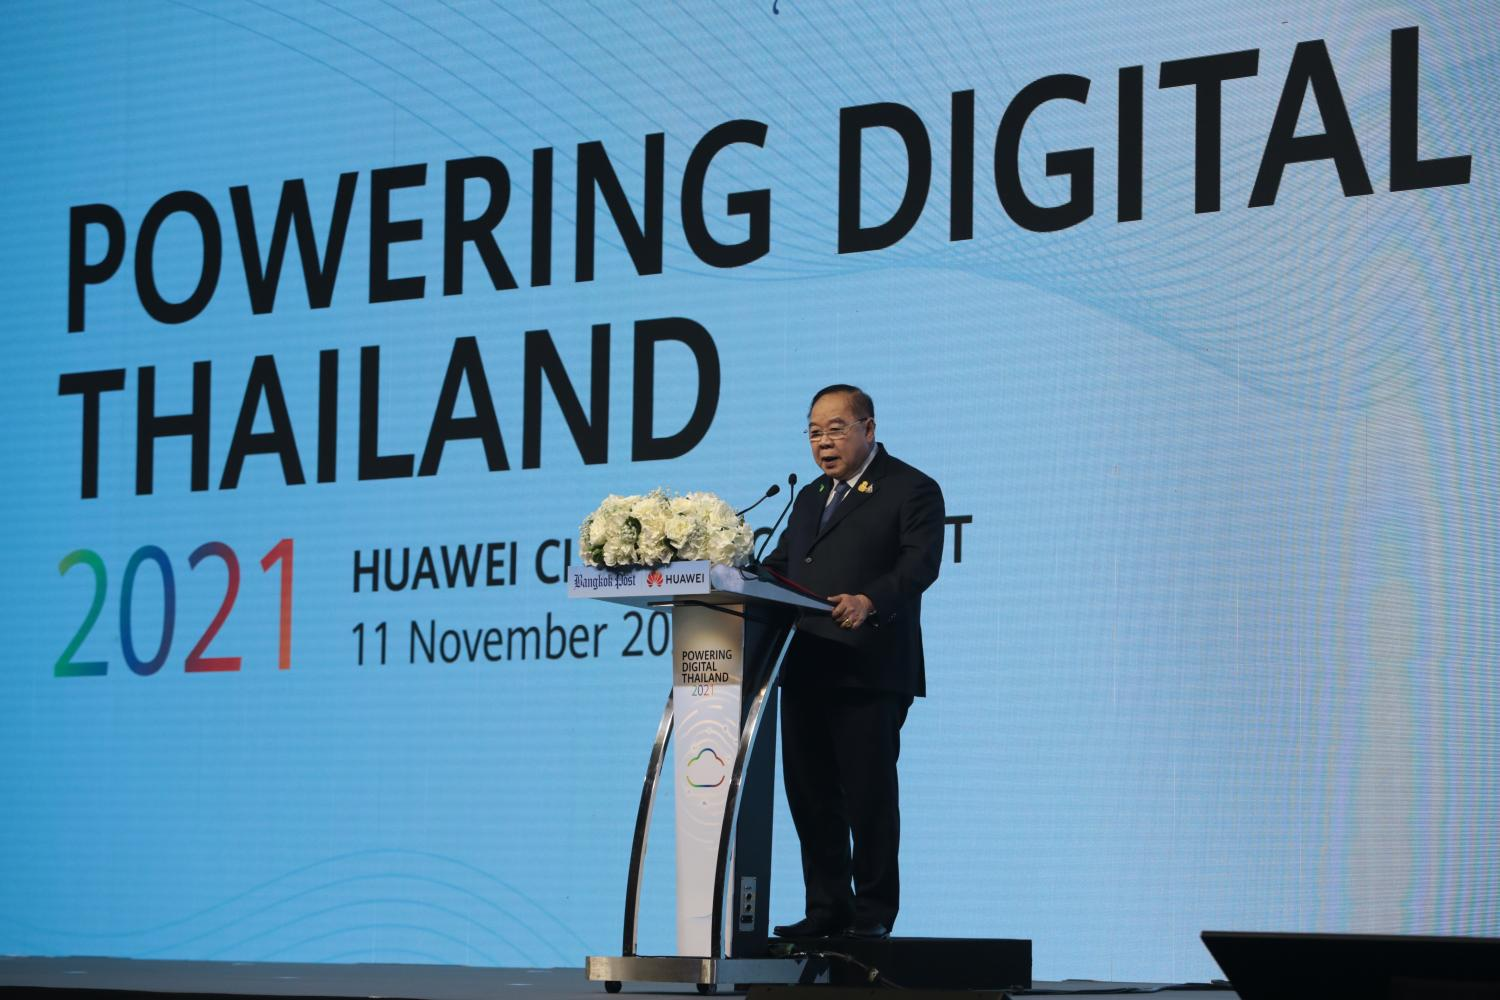 Deputy Prime Minister Prawit Wongsuwon delivers a speech at the Powering Digital Thailand 2021: Huawei Cloud & Connect forum at the Centara Grand at CentralWorld on Wednesday. (Photo by Chanat Katanyu)